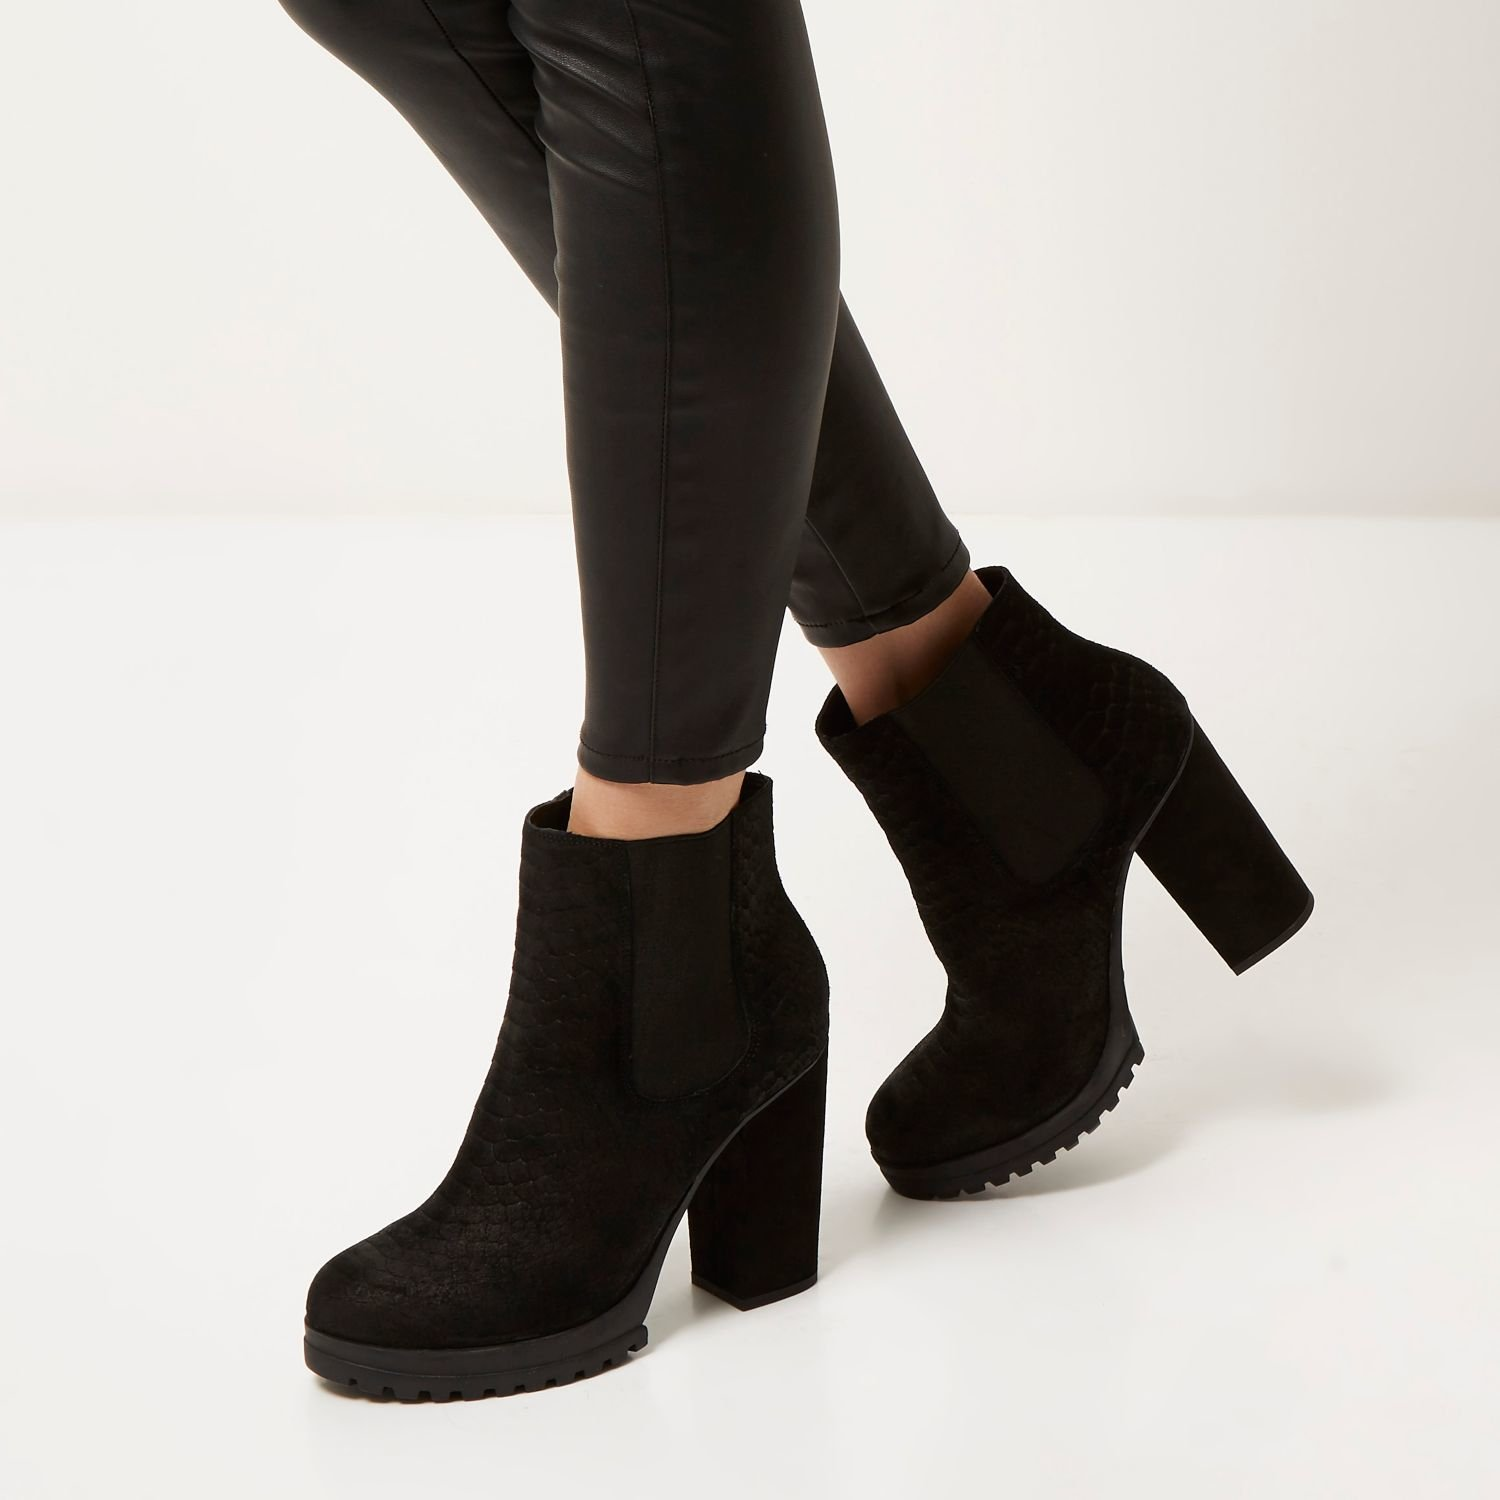 River island Black Suede Heeled Ankle Boots in Black | Lyst